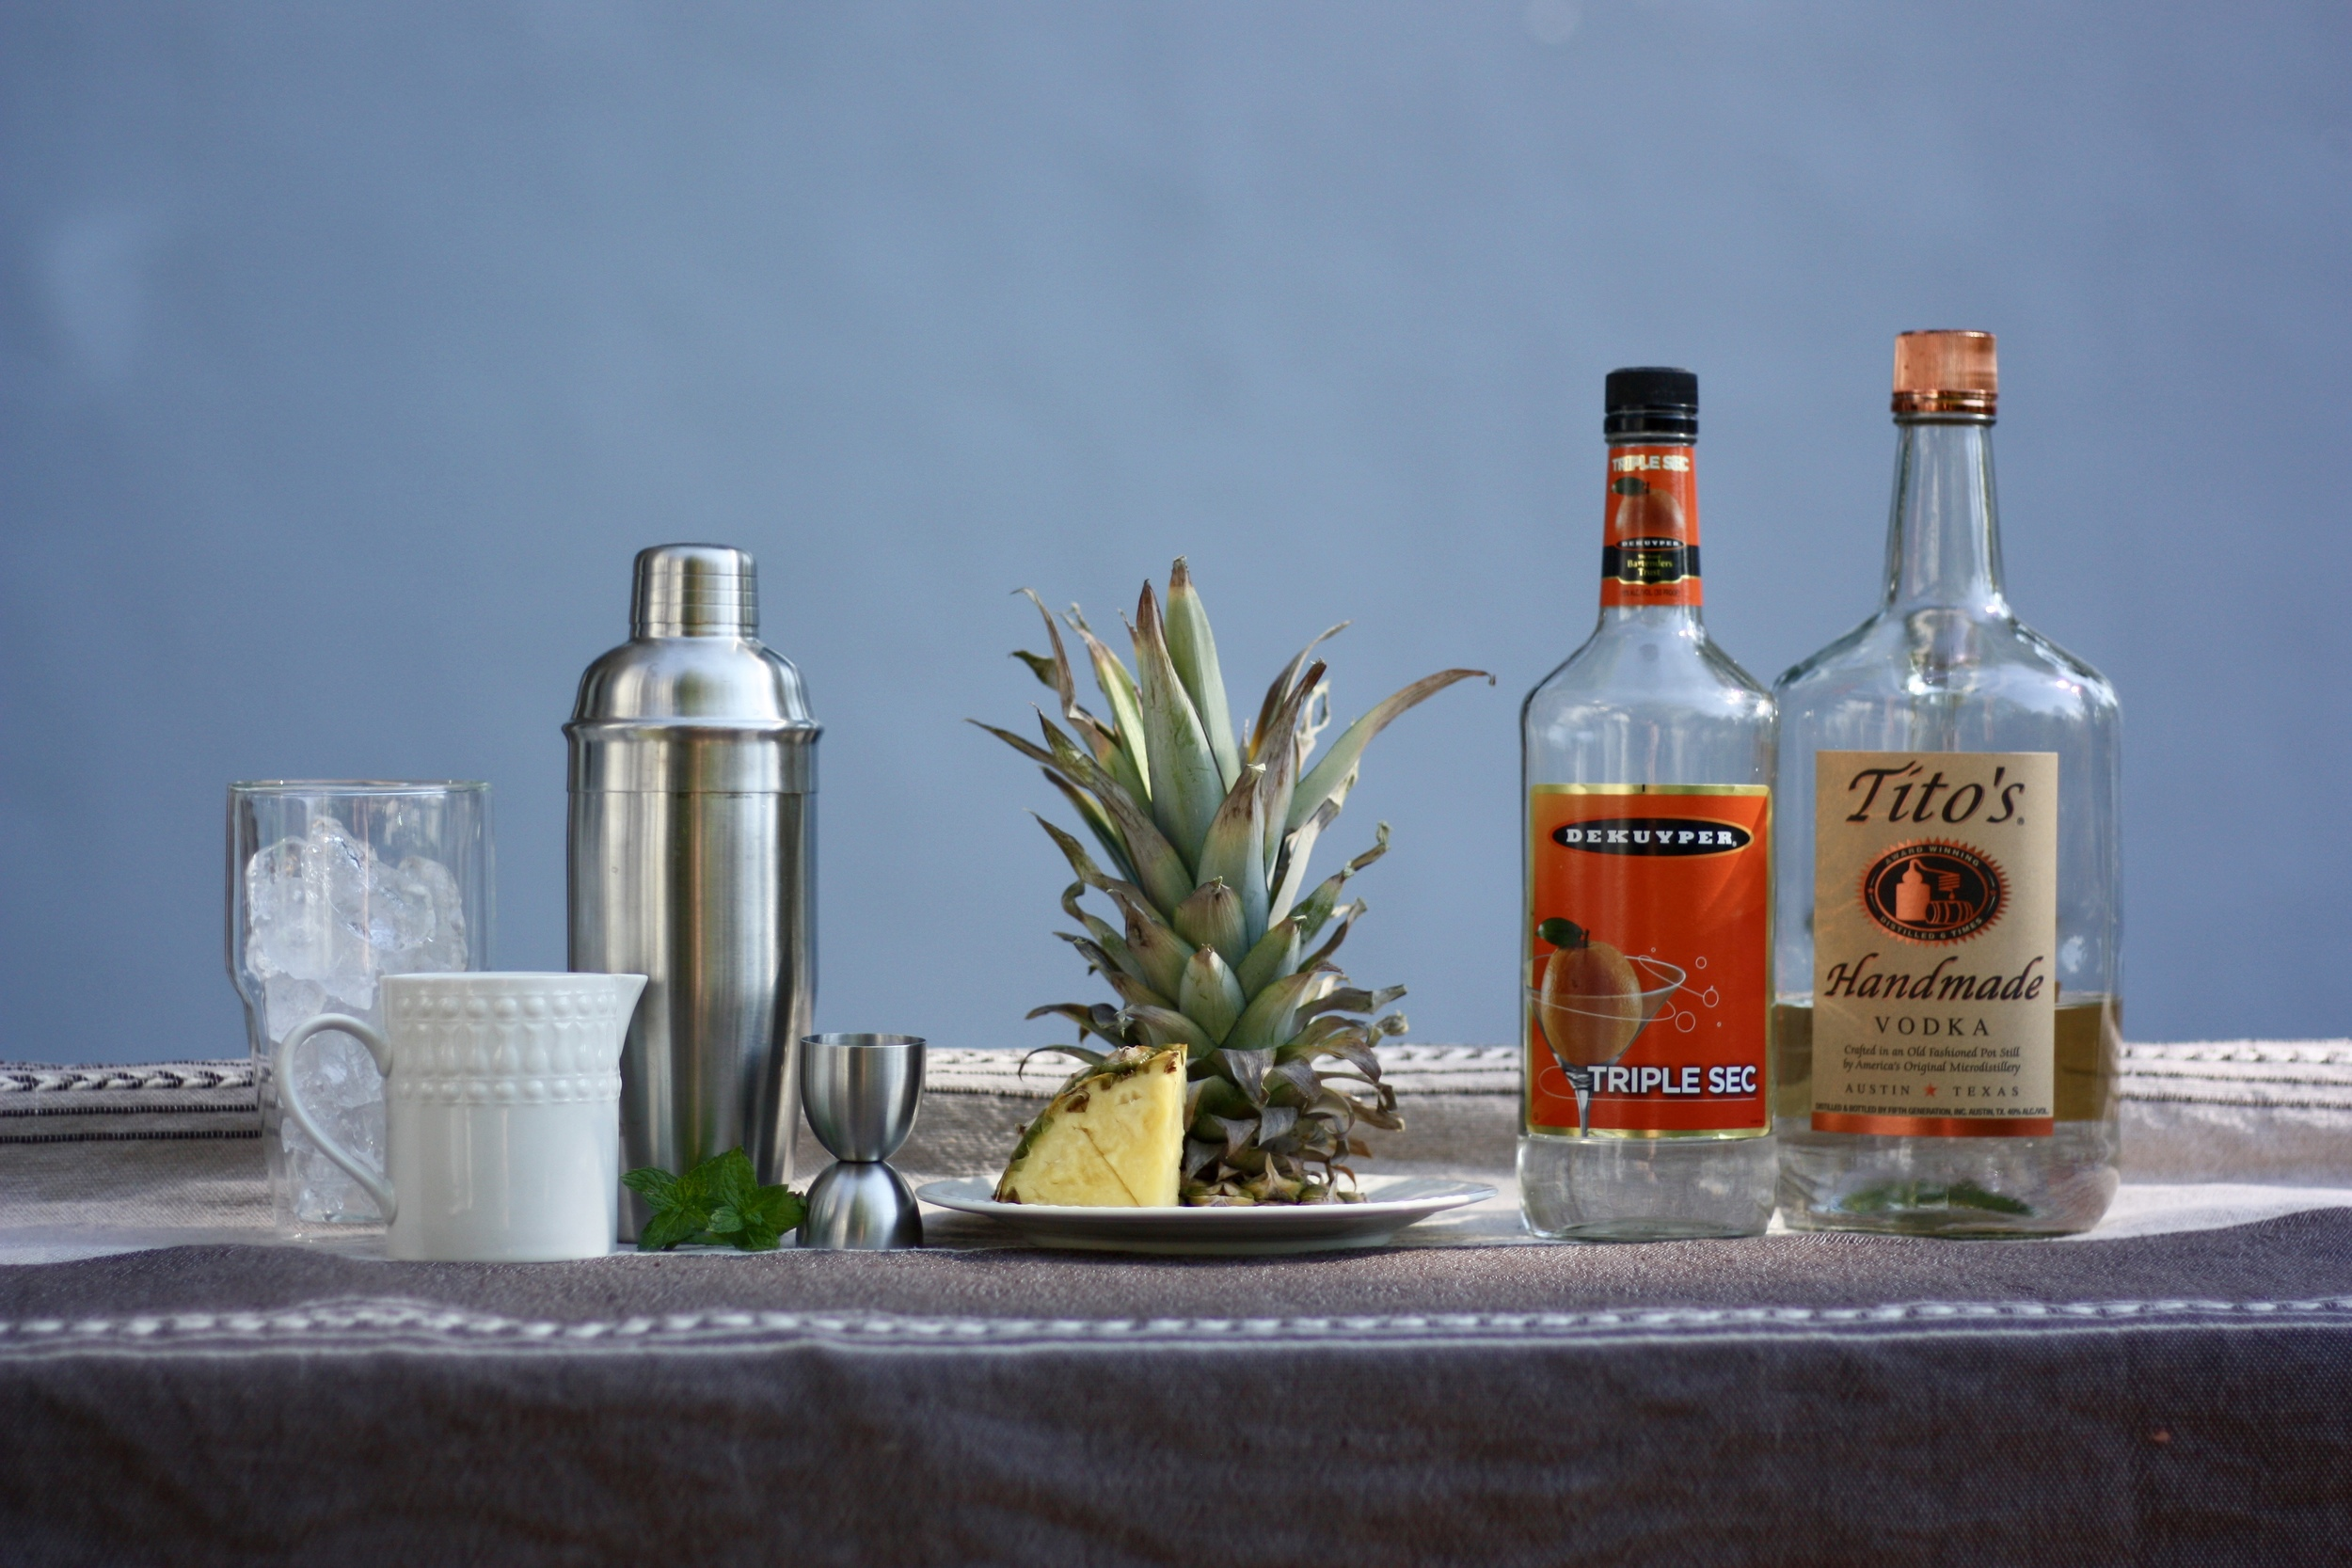 Tito's is my go-to for cocktails with vodka. I also love the Bodum double wall glasses, they're great for keeping your summer drinks cold.